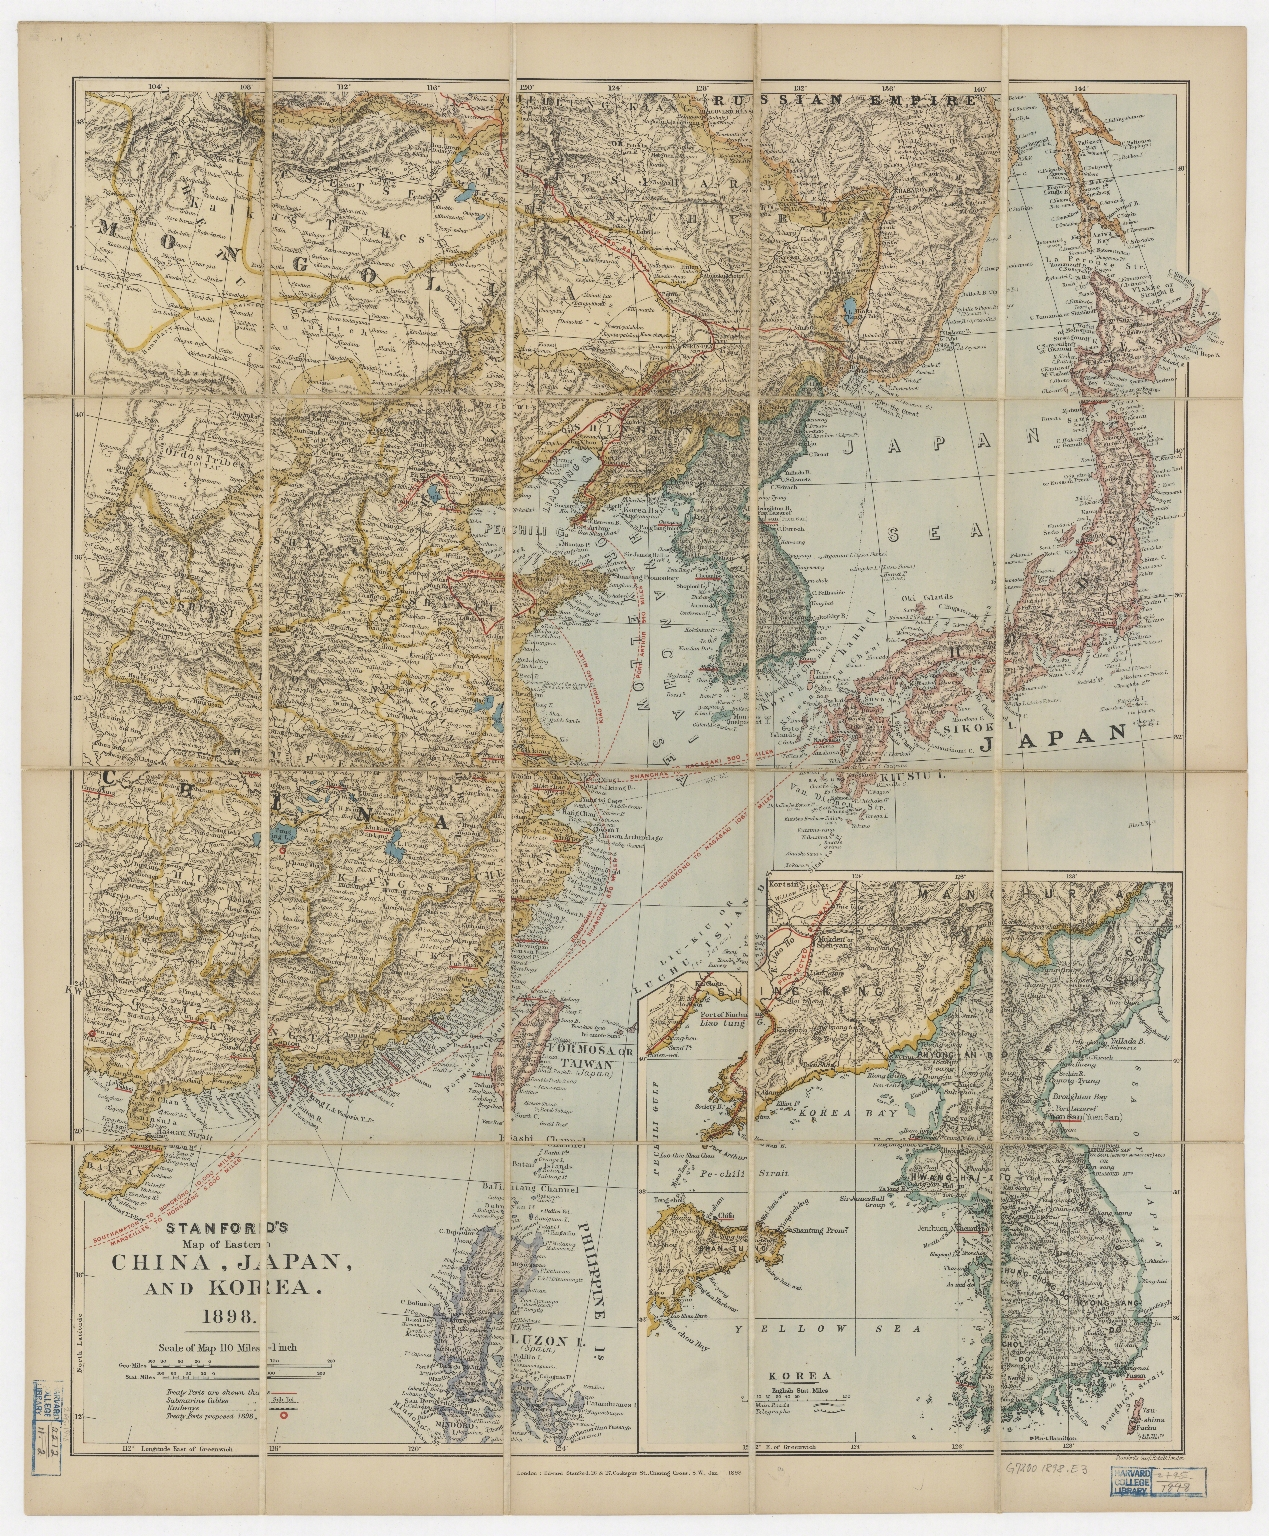 Stanford's map of Eastern China, Japan and Korea, 1898